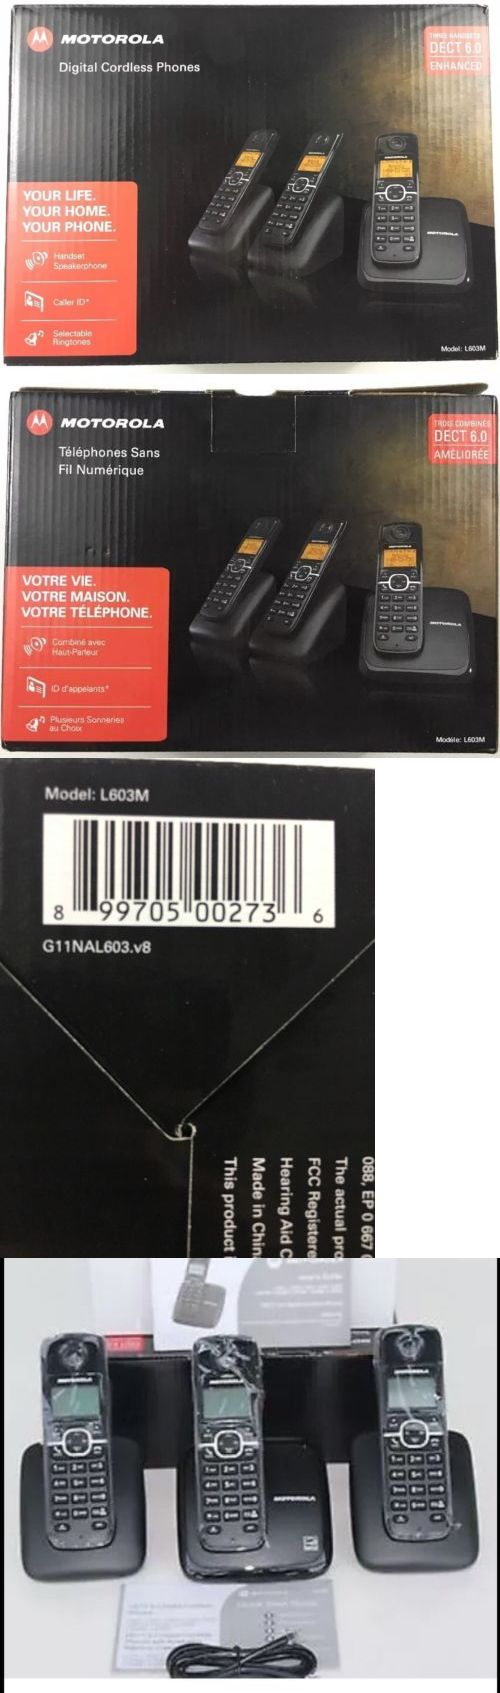 Cordless Telephones and Handsets: Motorola L603m Cordless Home Phone With 3 Handsetset Detect 6.0 (Brand New } -> BUY IT NOW ONLY: $39.99 on eBay!